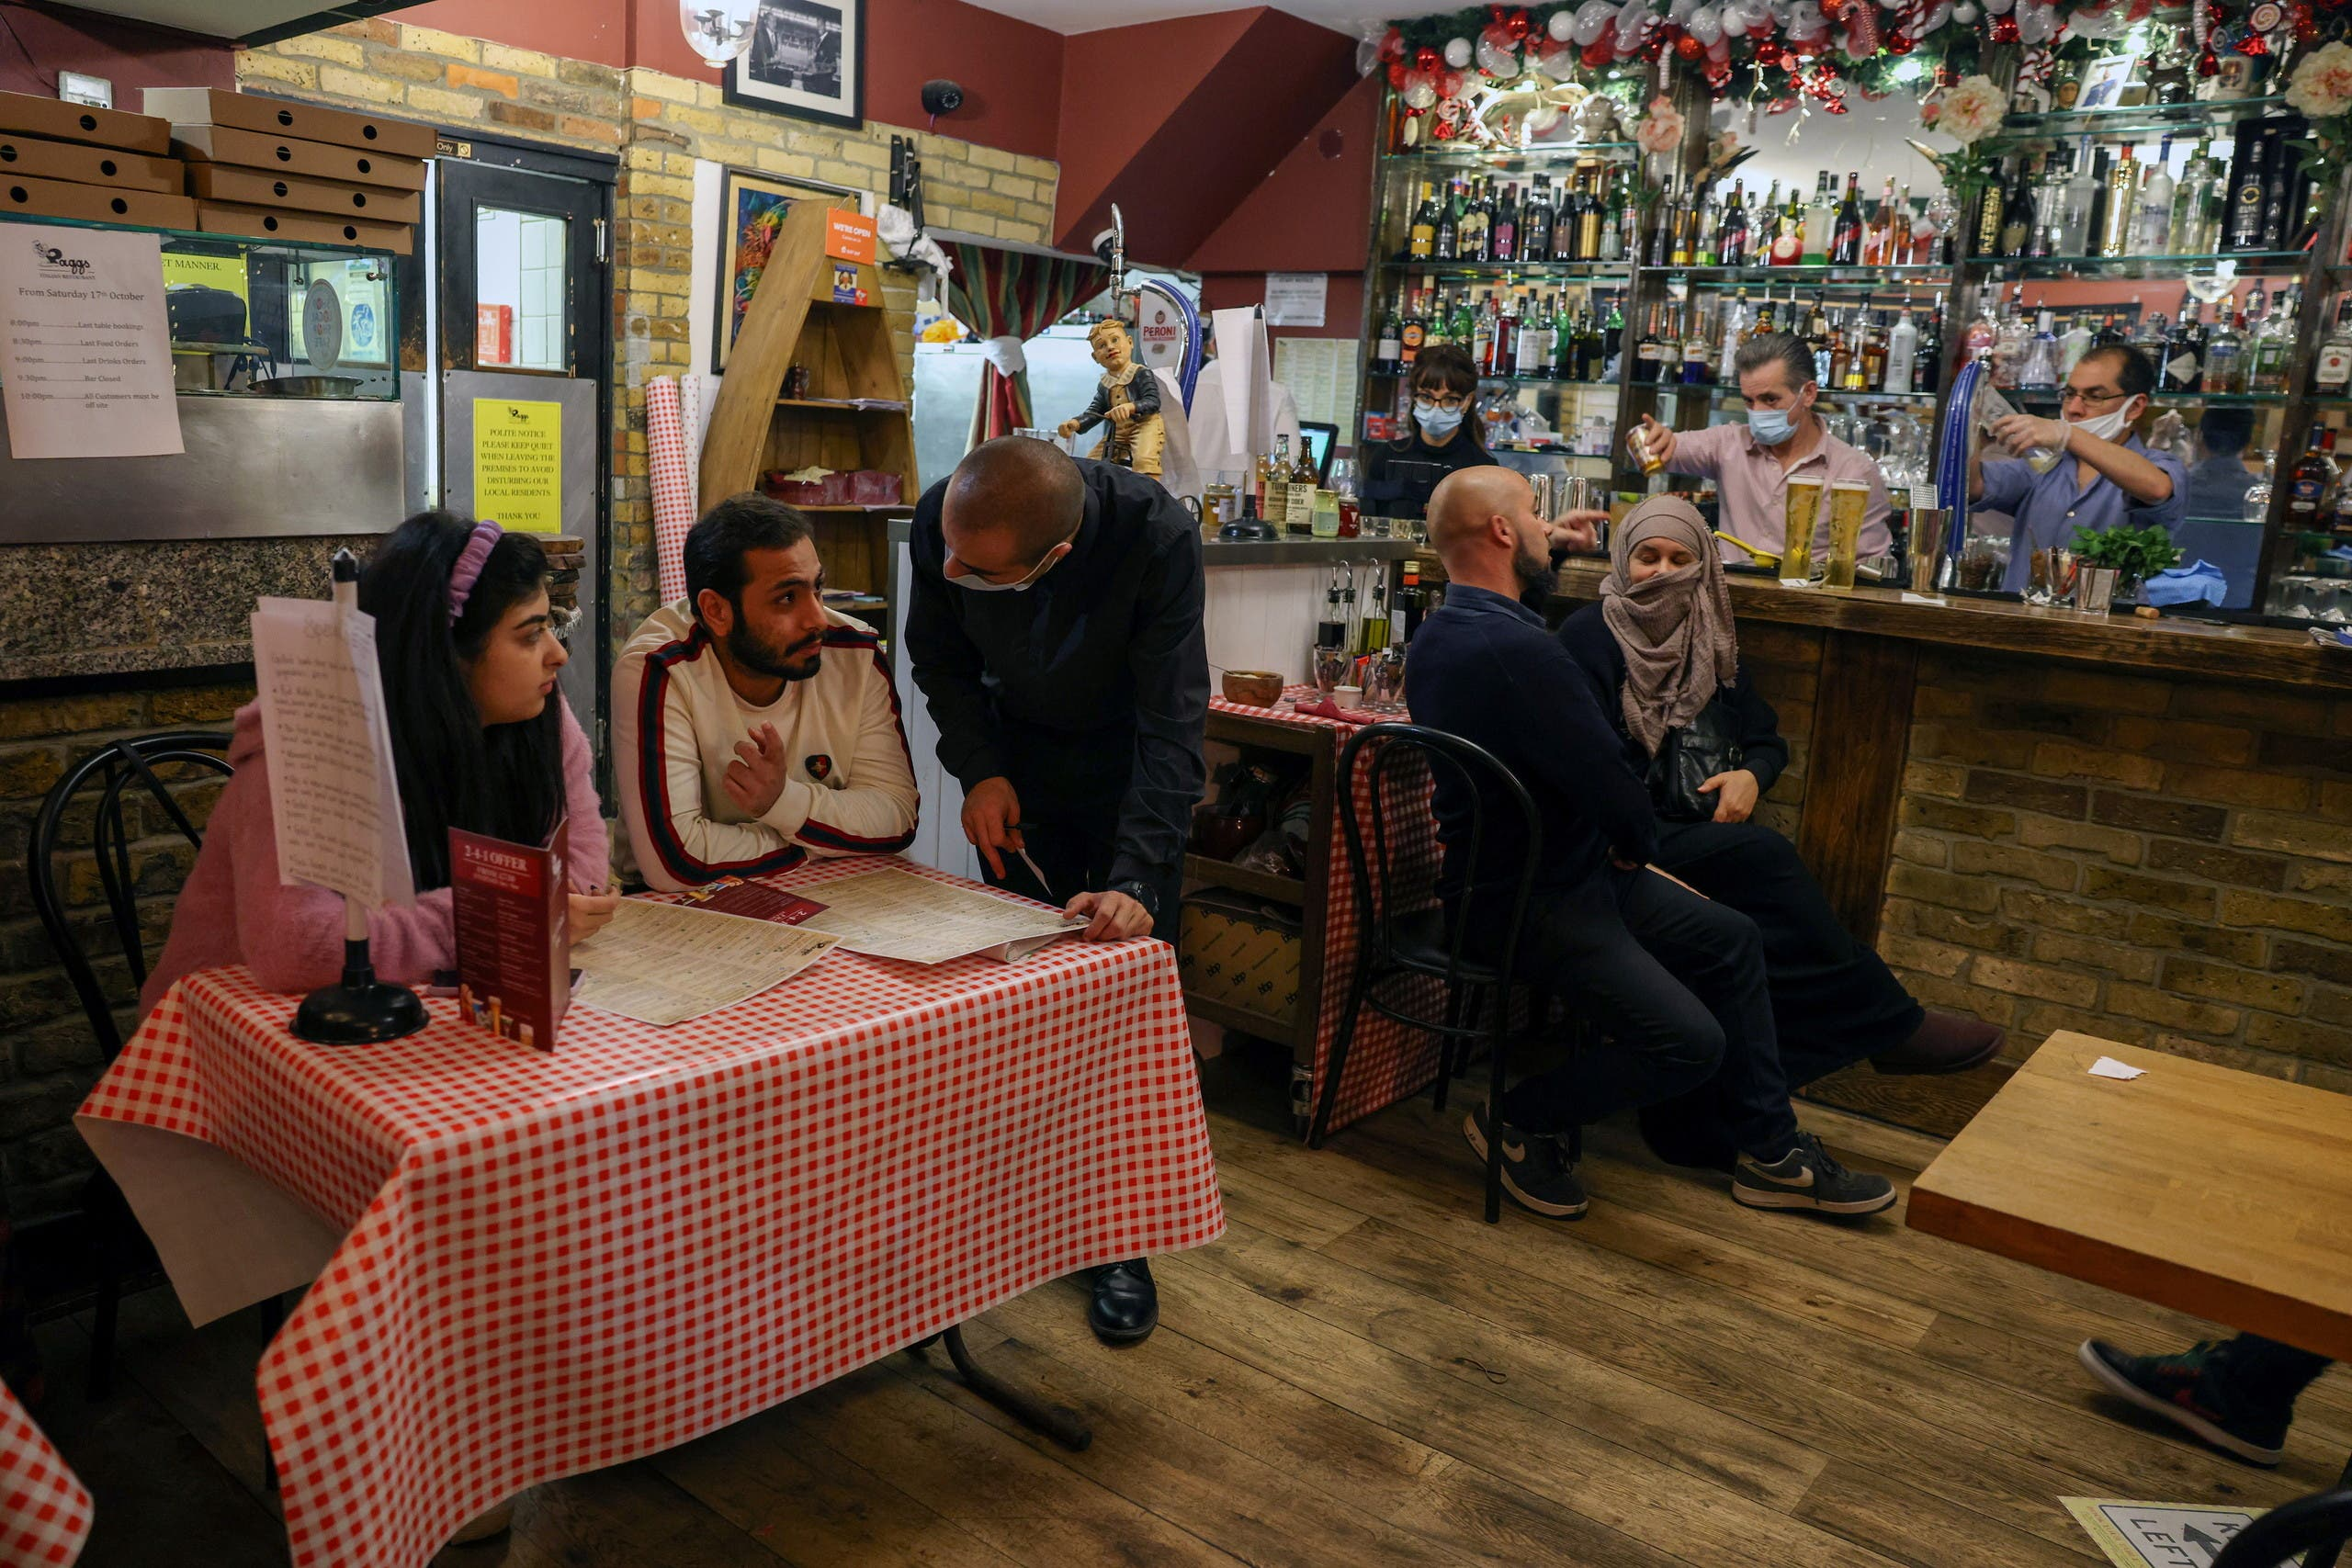 Customers and staff at Il Pagliaccio, an Italian restaurant, before closure ahead of the lockdown during the coronavirus disease (COVID-19) outbreak in Fulham, London, Britain November 4, 2020. (Reuters)